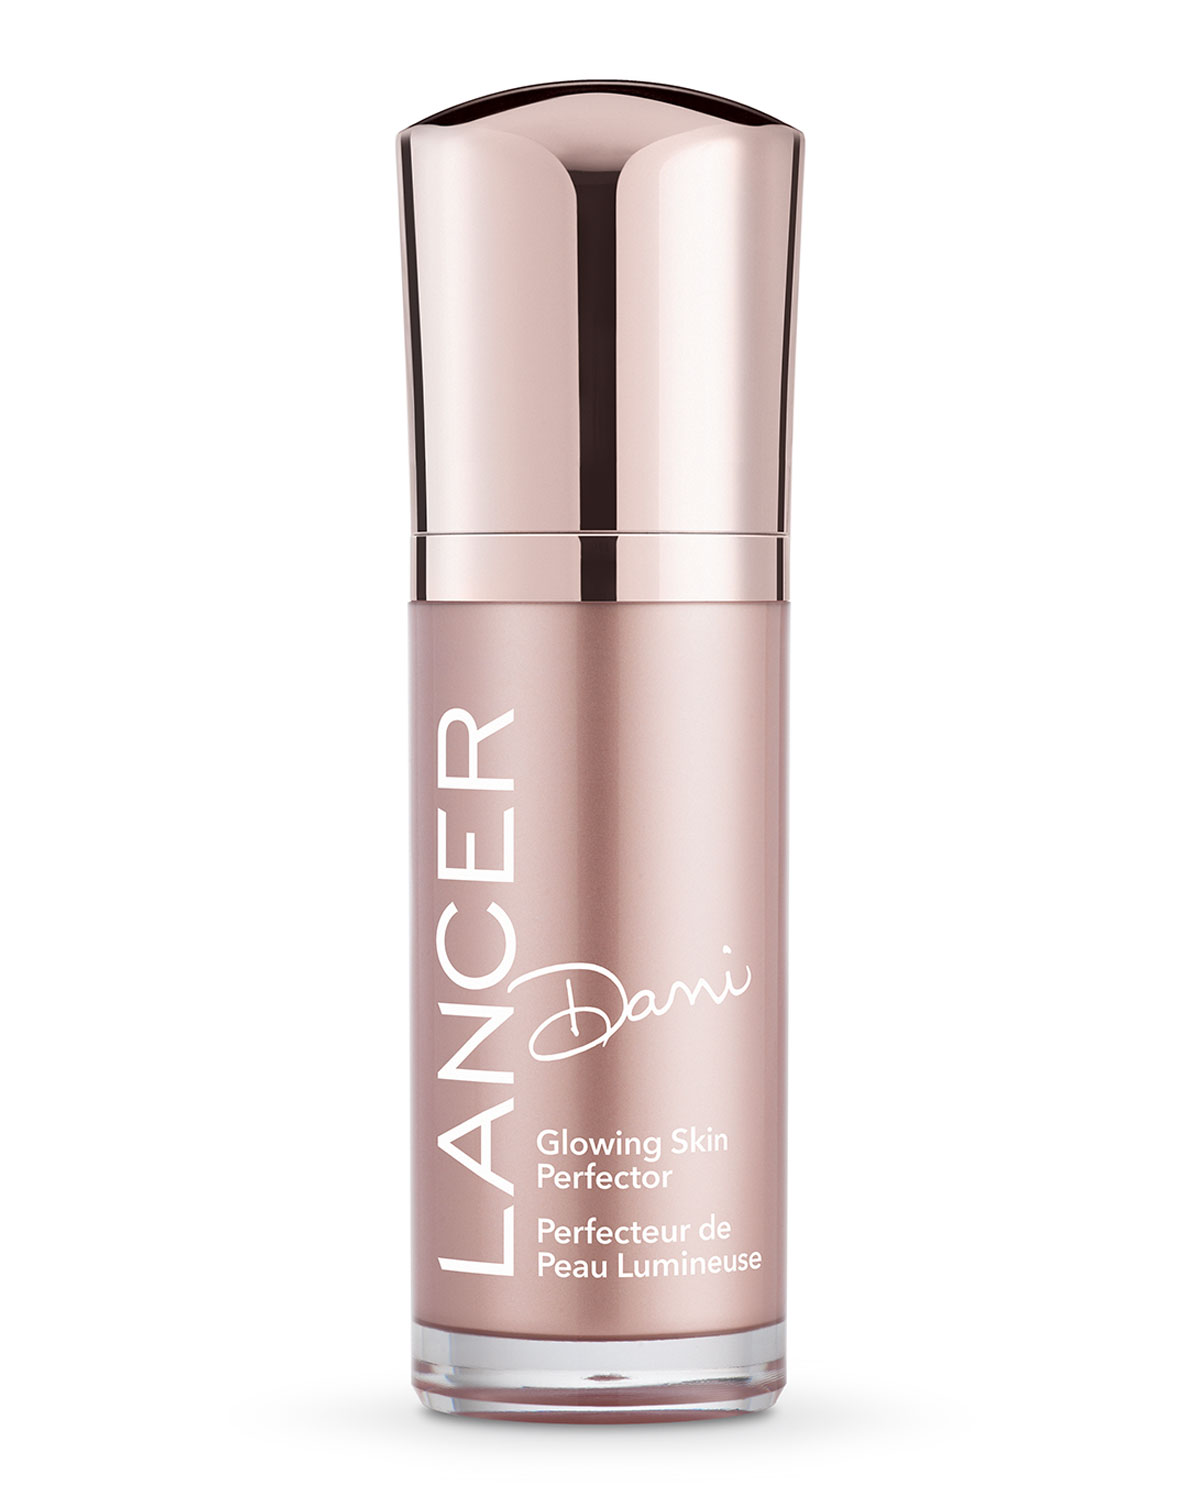 Lancer 1 oz. Dani Glowing Skin Perfector